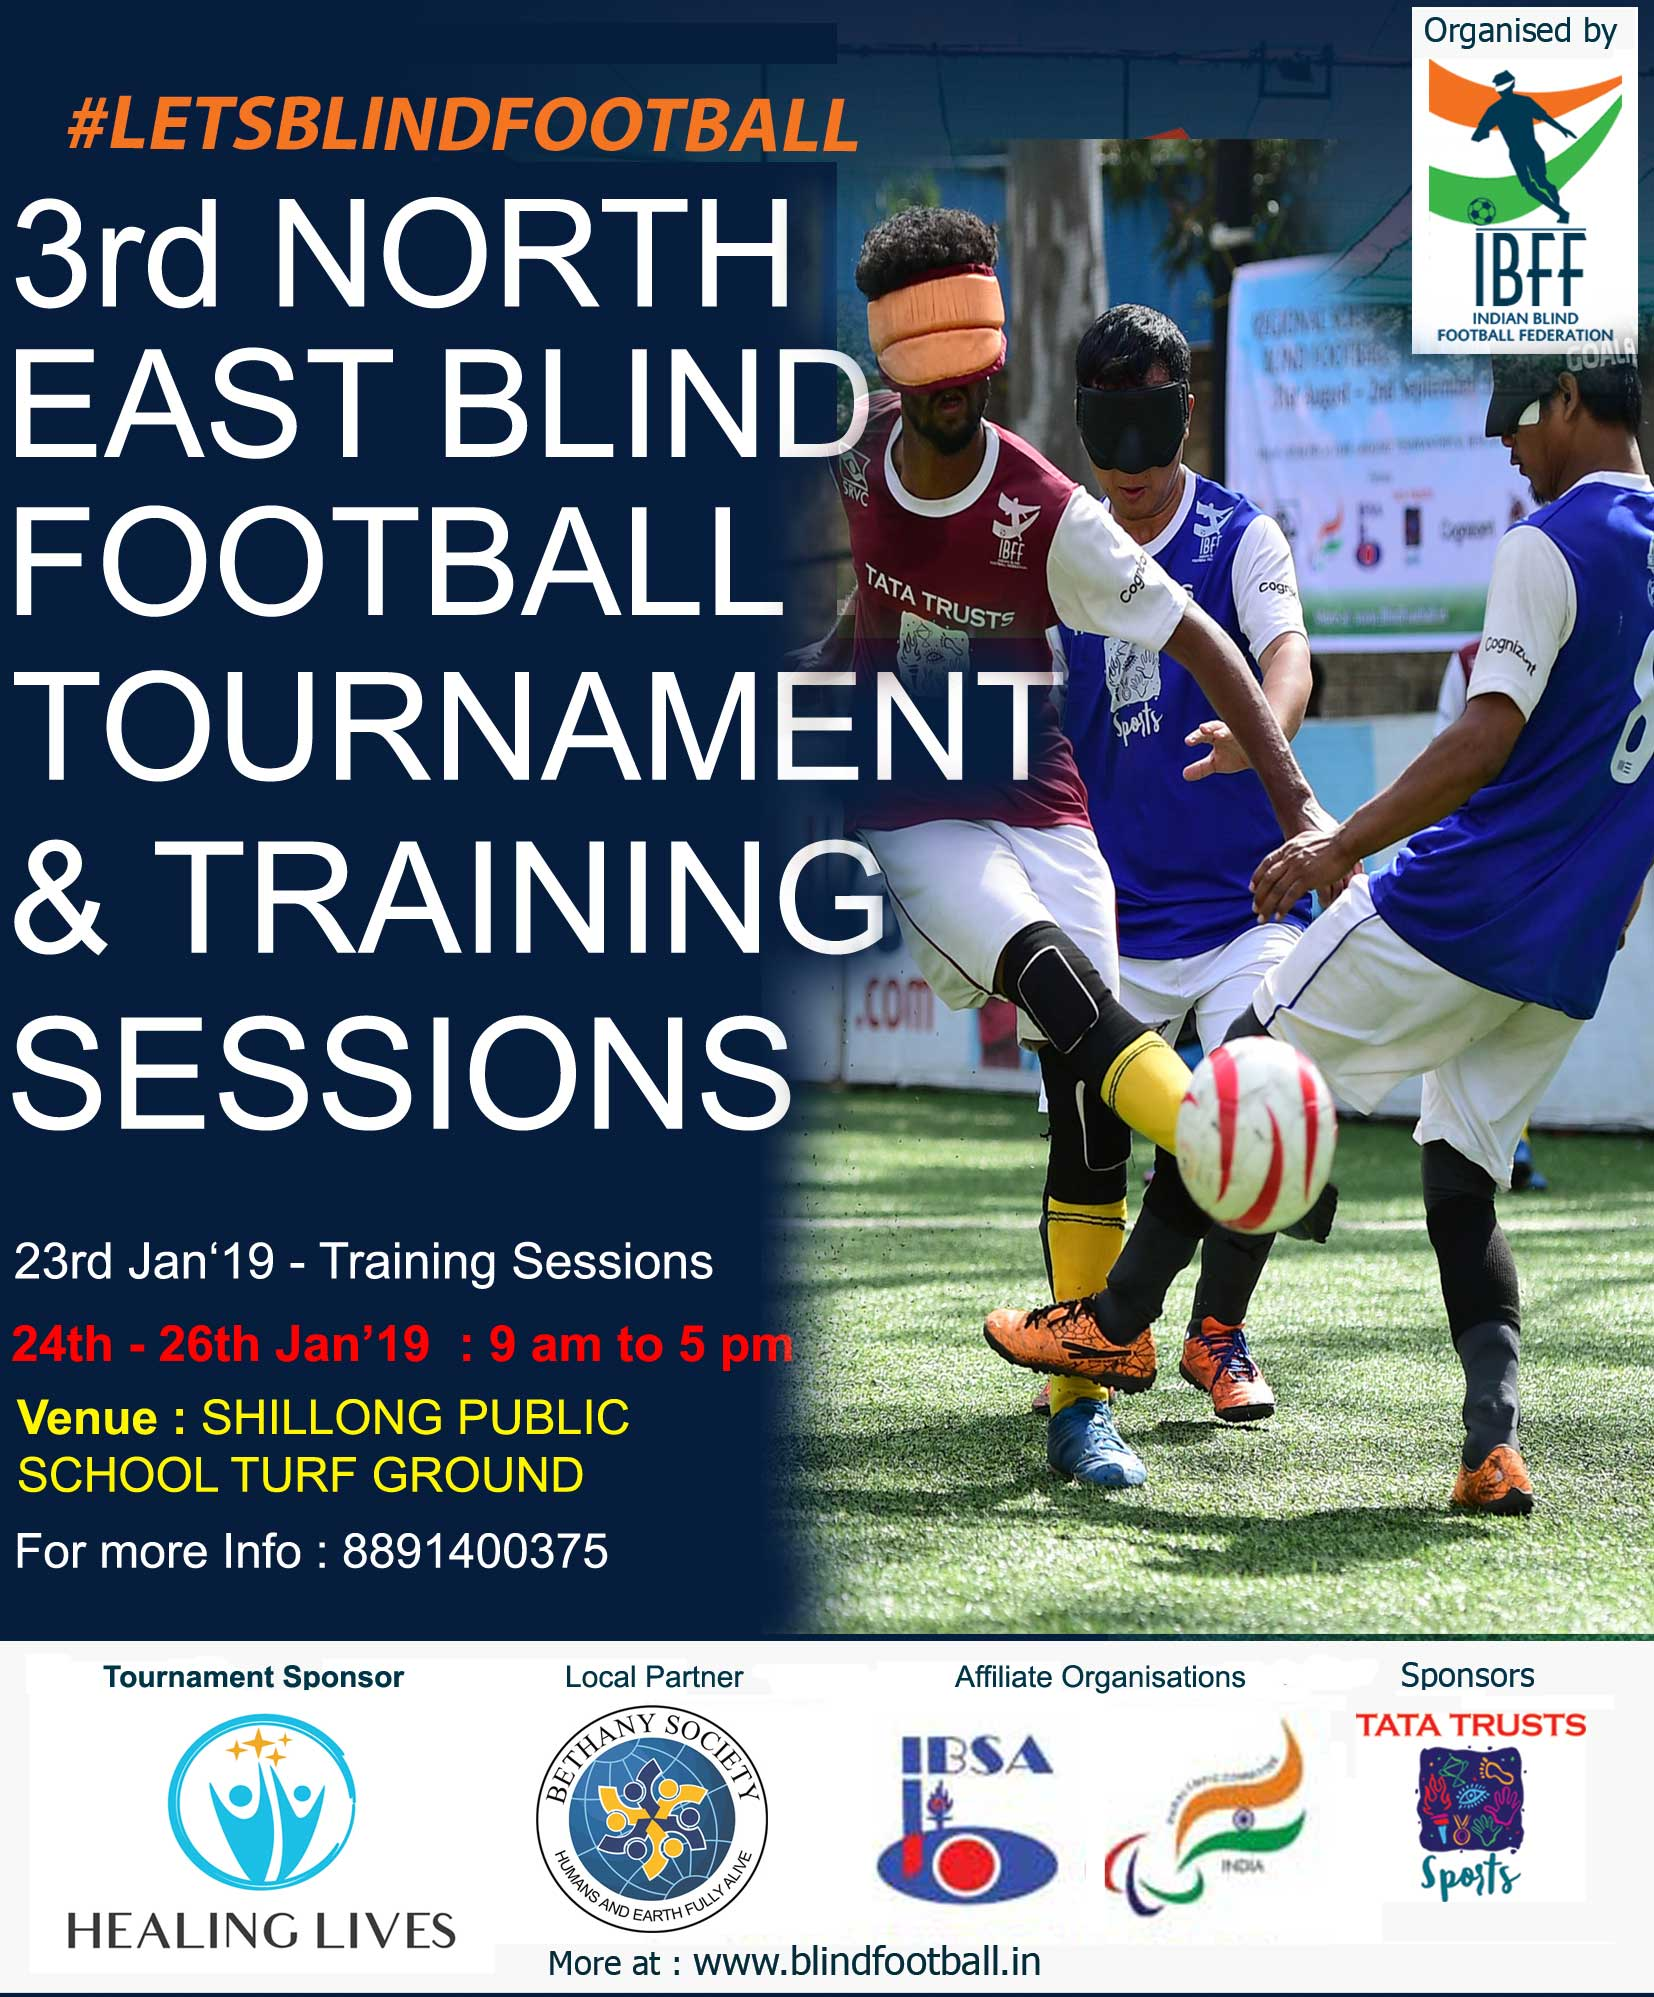 Third North East Blind Football Tournament - Shillong 24-26 Jan 2019